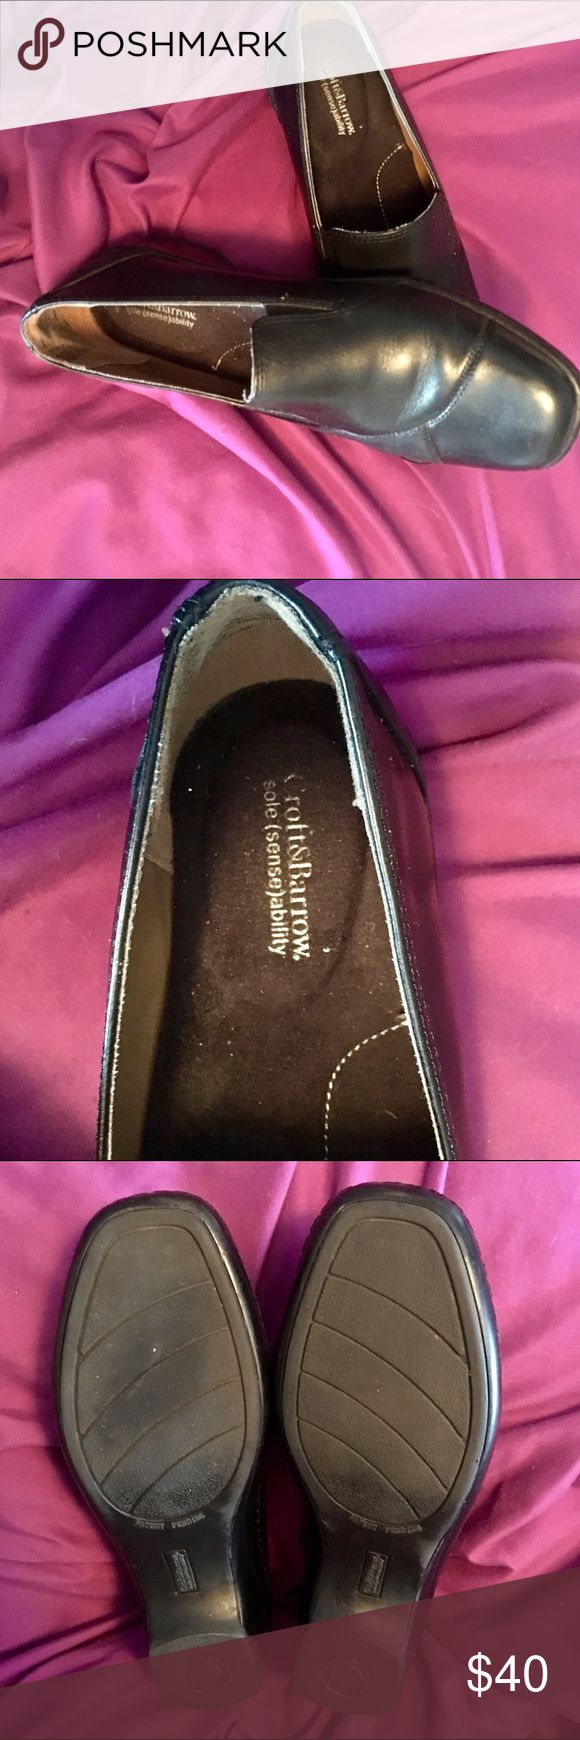 EUC Black Leather Loafers Nice Black Leather Loafers Great For Work Or Casual-Small Repaired Scratch On Left Front Toe -Other Than That Excellent Condition. croft & barrow Shoes Flats & Loafers